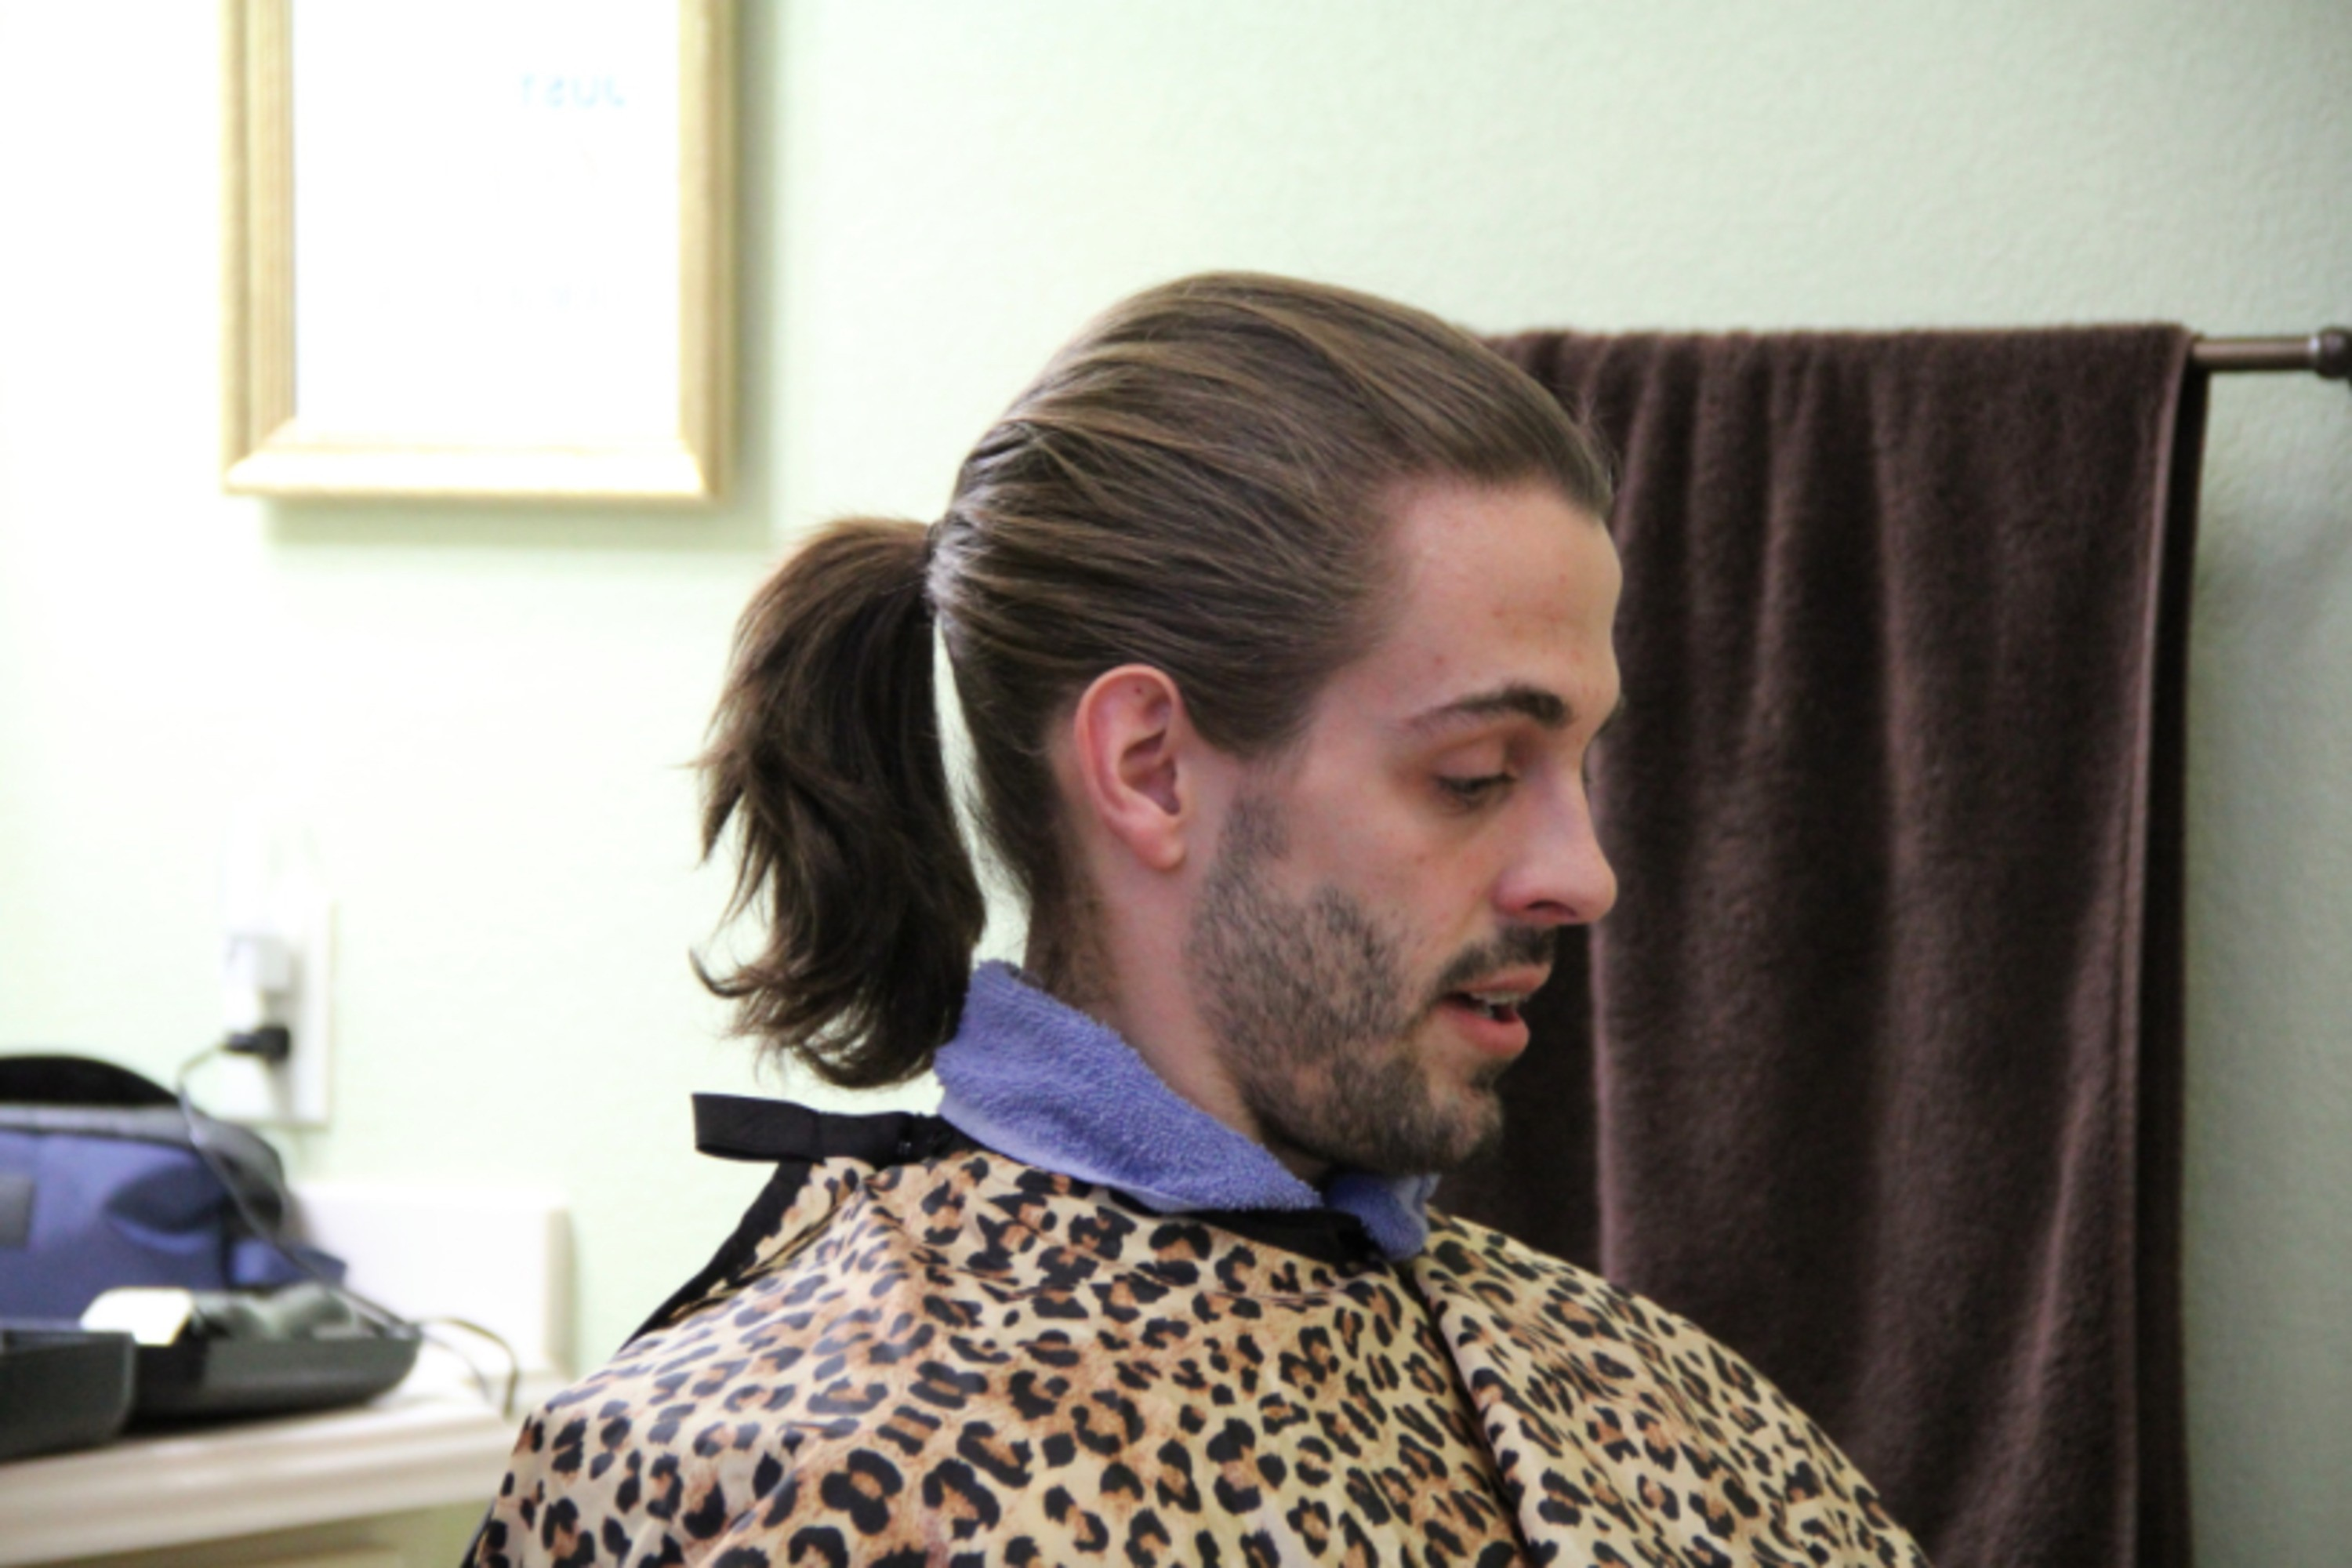 Derick Dillard man style with a bun.